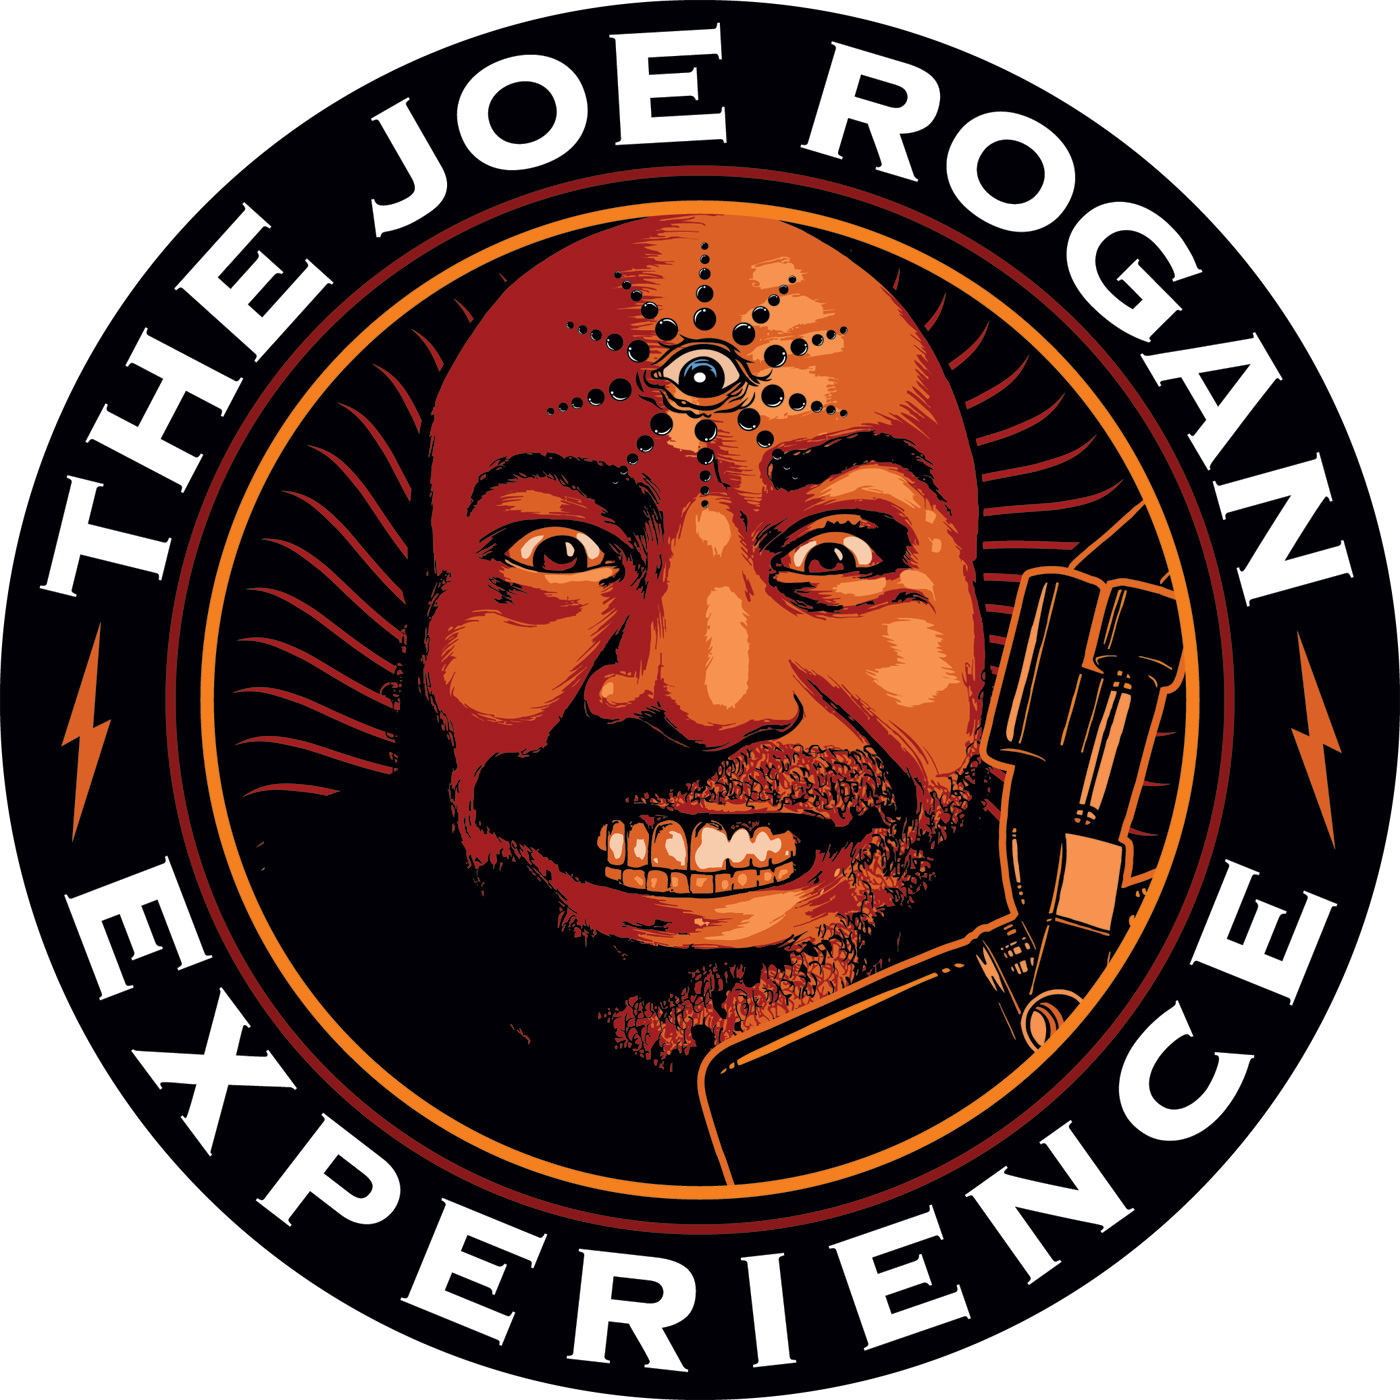 The Joe Rogan Experience PODCAST #80 - Joey Diaz, Ari Shaffir, Brian Redban